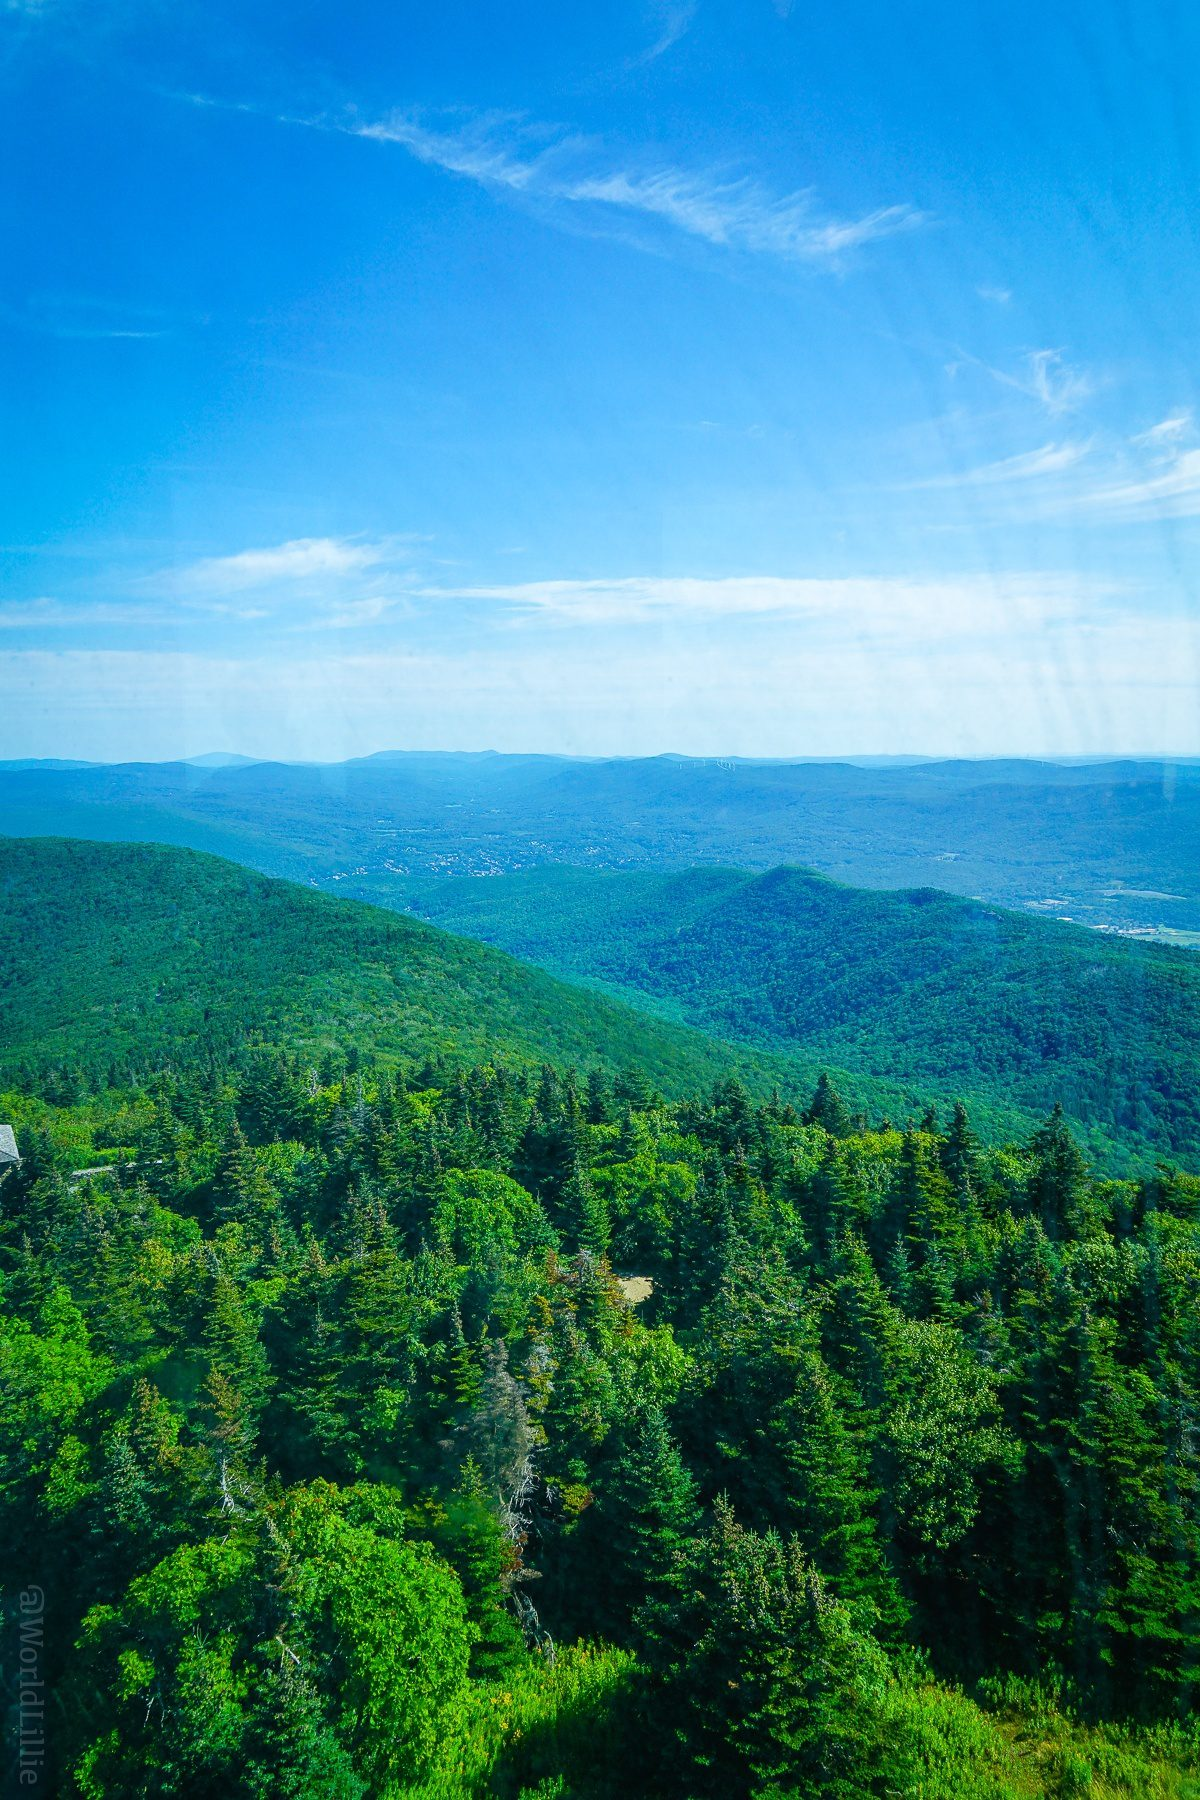 Planning travel to Mount Greylock, the highest point in Massachusetts? Here's the easiest way up the mountain to see great New England views, even with young kids. Pictured: the view from atop the Veterans War Memorial Tower.